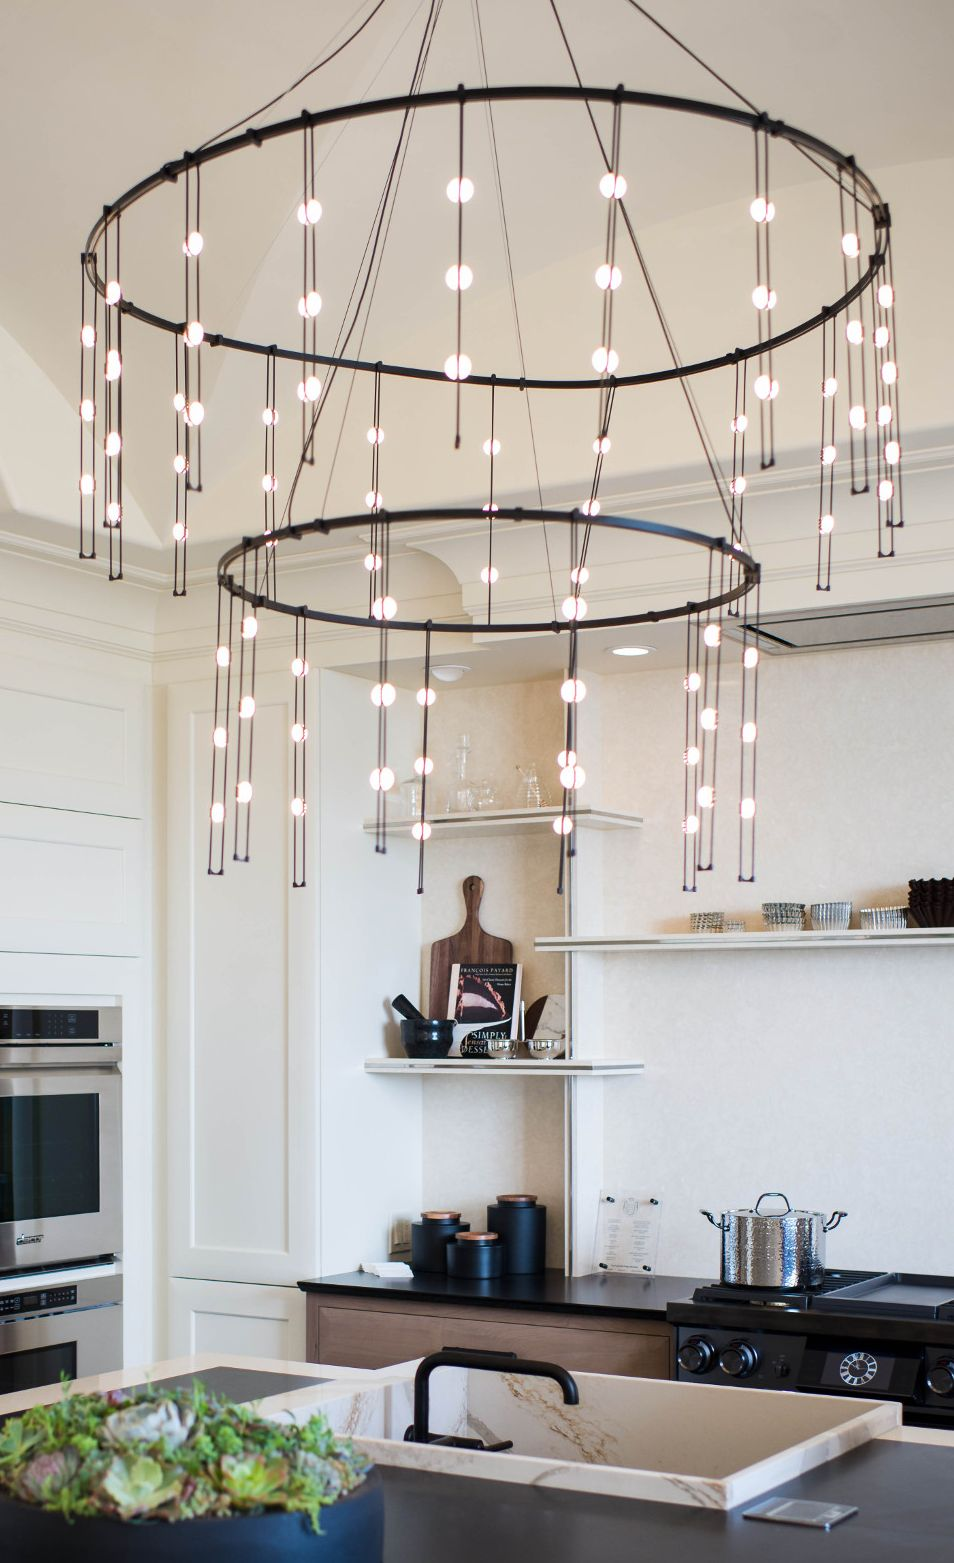 A modern chandelier illuminates the kitchen island in the Kips Bay Decorator Show House Palm Beach.